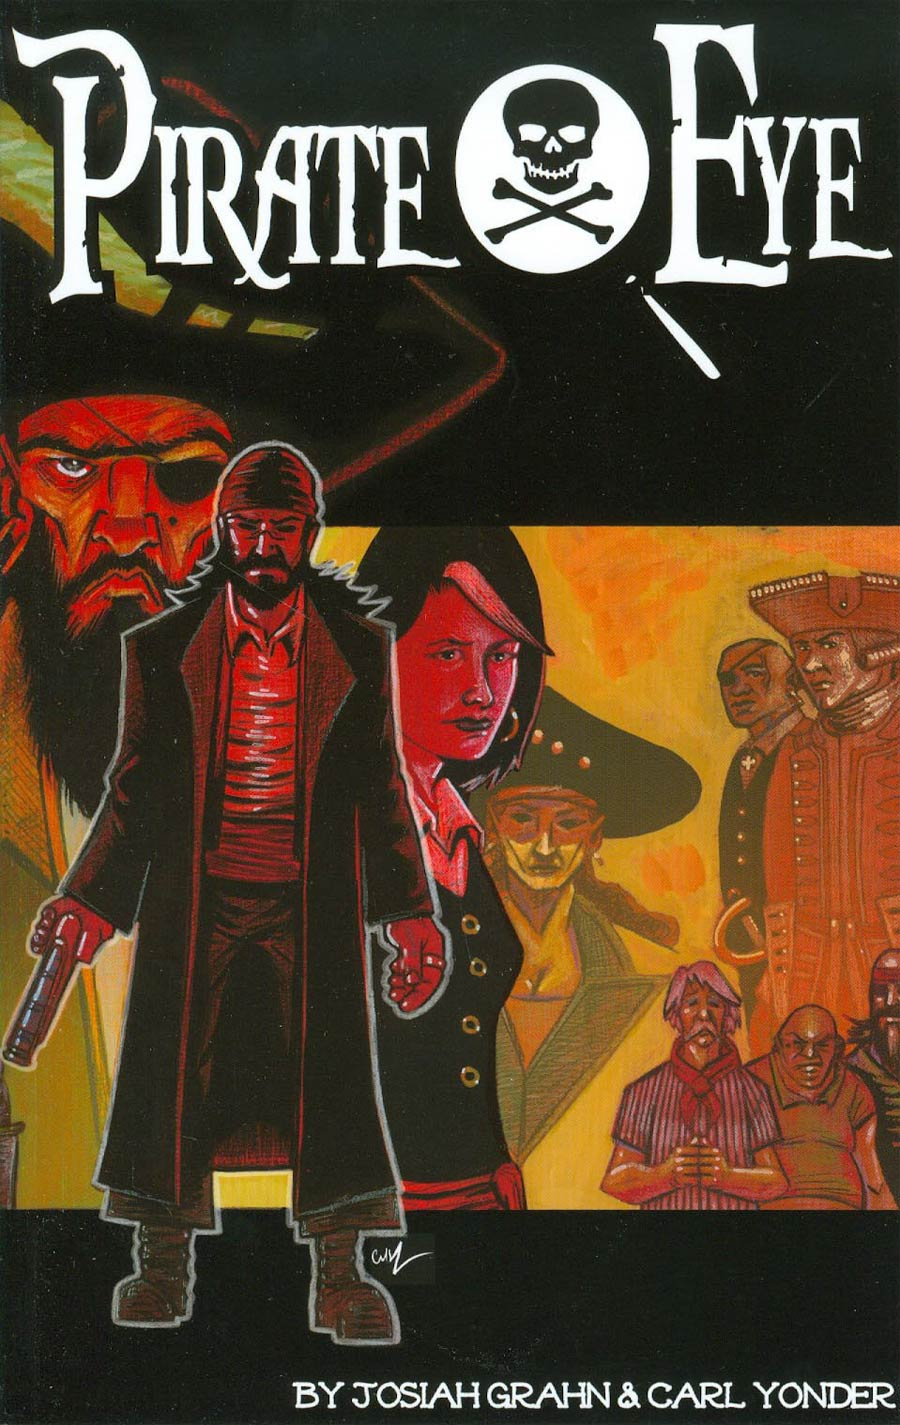 Pirate Eye Vol 1 Wretched Tales TP